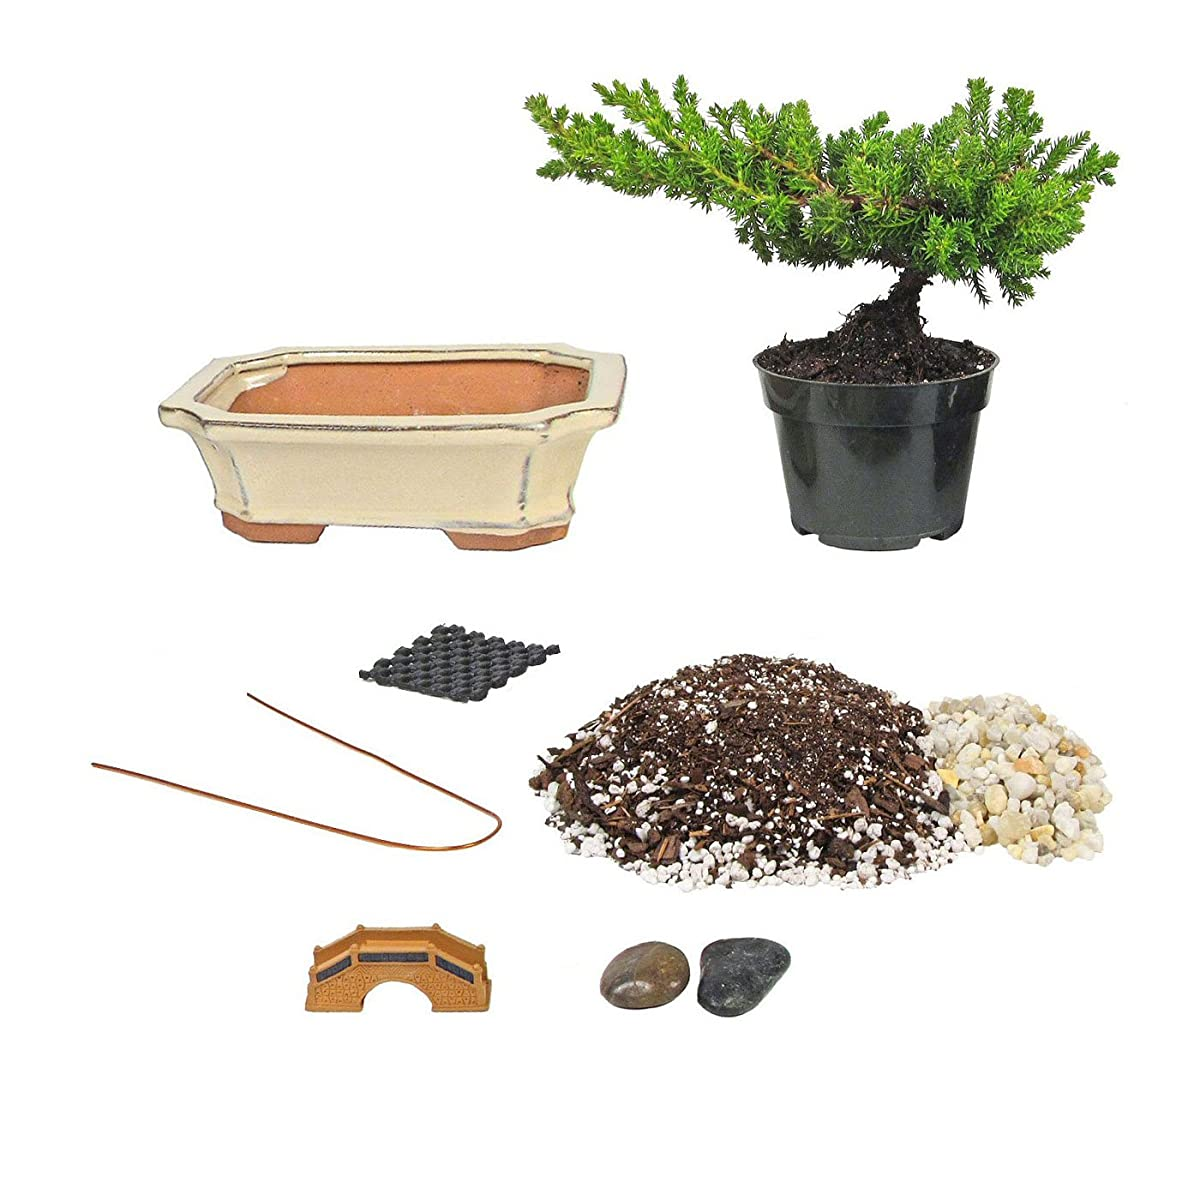 Eves Bonsai Tree Starter Kit, Complete Do-It-Yourself Kit with 6 Year Old Small Japanese Juniper